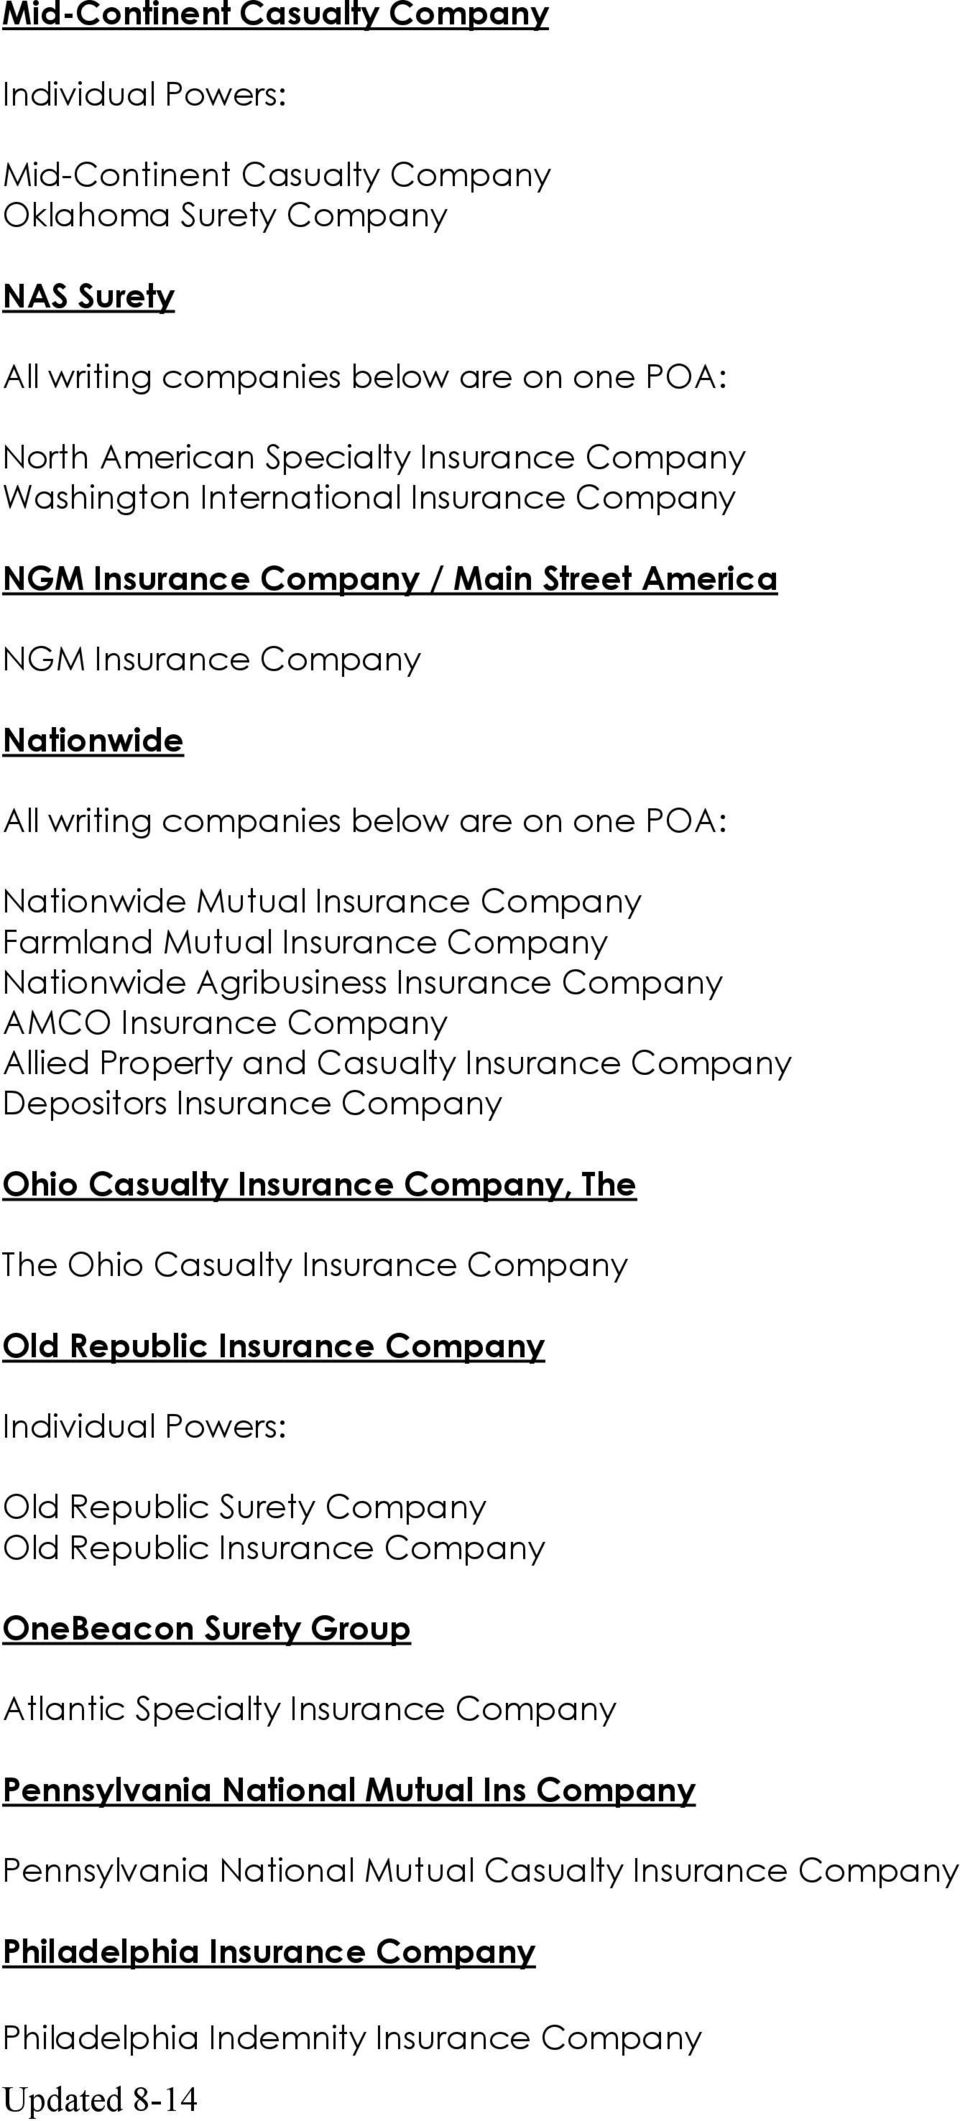 Allied Property and Casualty Insurance Company Depositors Insurance Company Ohio Casualty Insurance Company, The The Ohio Casualty Insurance Company Old Republic Insurance Company Old Republic Surety